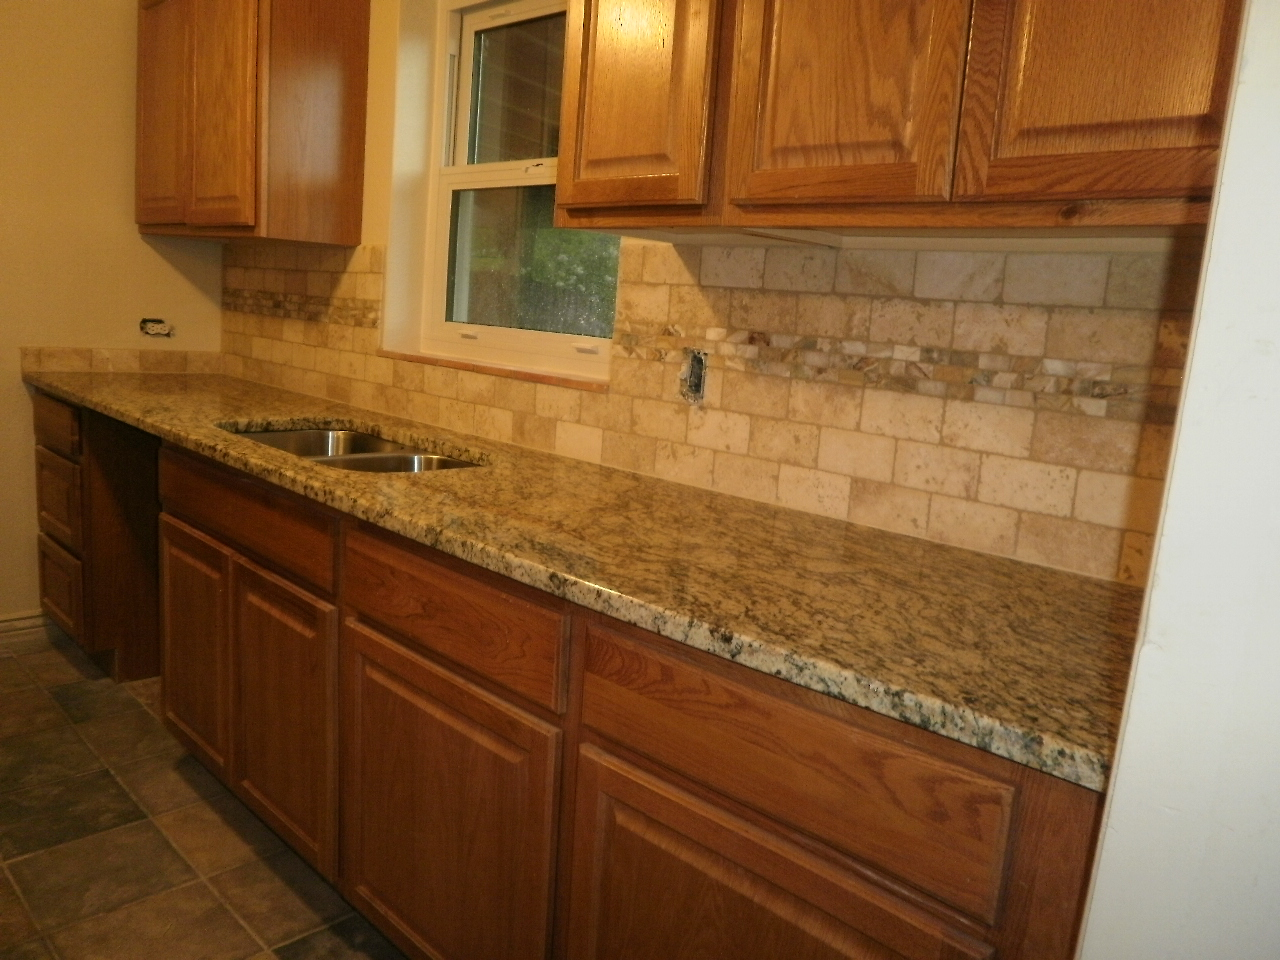 Integrity installations a division of front range backsplash just completed 3x6 Kitchen tile design ideas backsplash